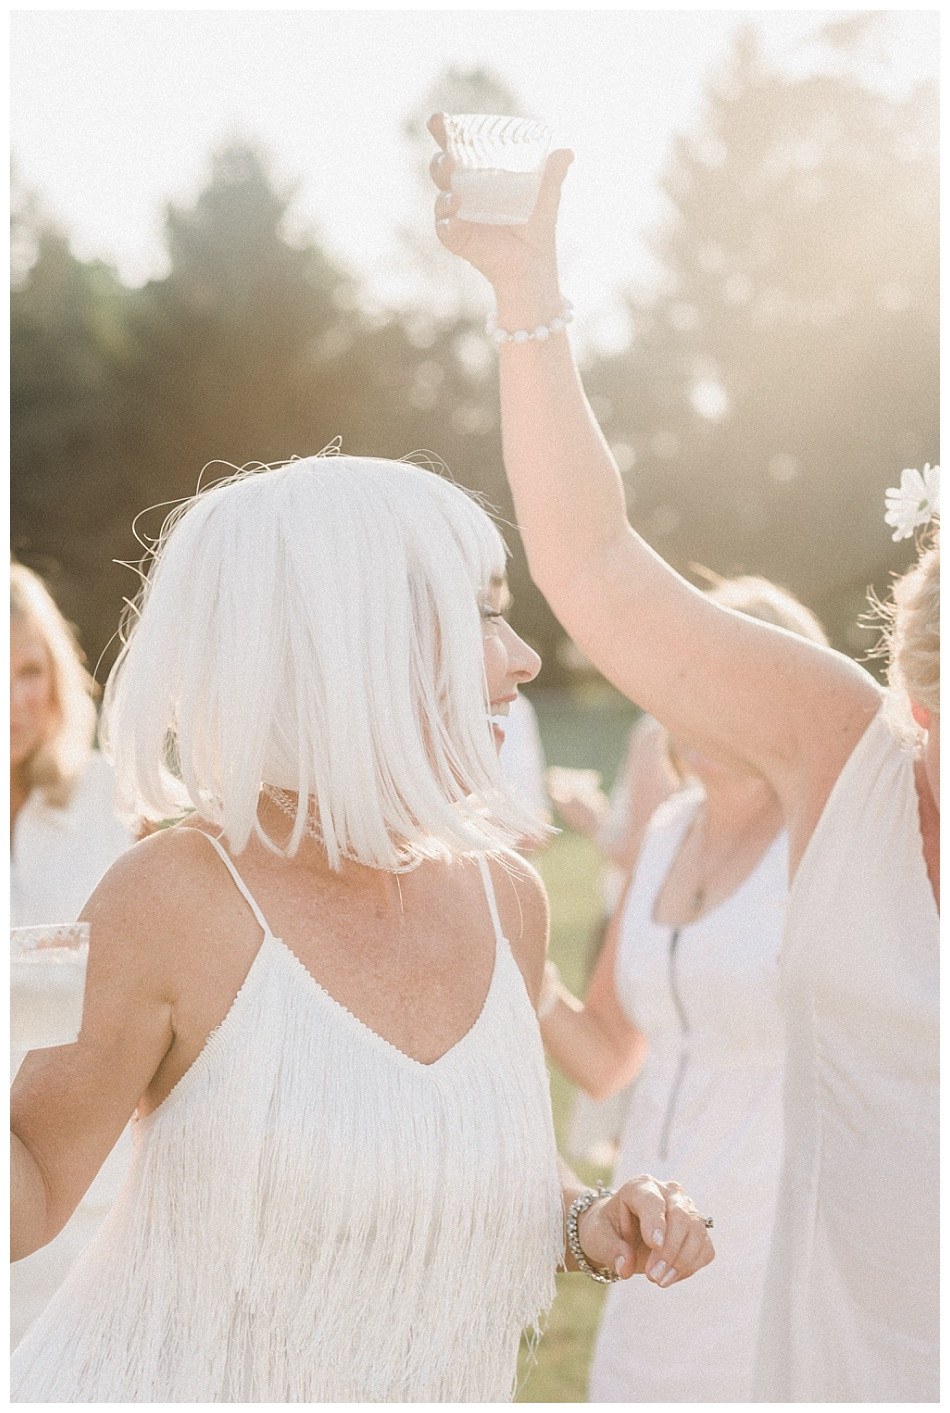 White dress and wig, raised plastic glass.  Fete en Blanc (Party in White) Lancaster 2019 at Longs Park by Angela Weiler Photography - Fine Art Wedding and Lifestyle Photographer in Lancaster Pennsylvania.